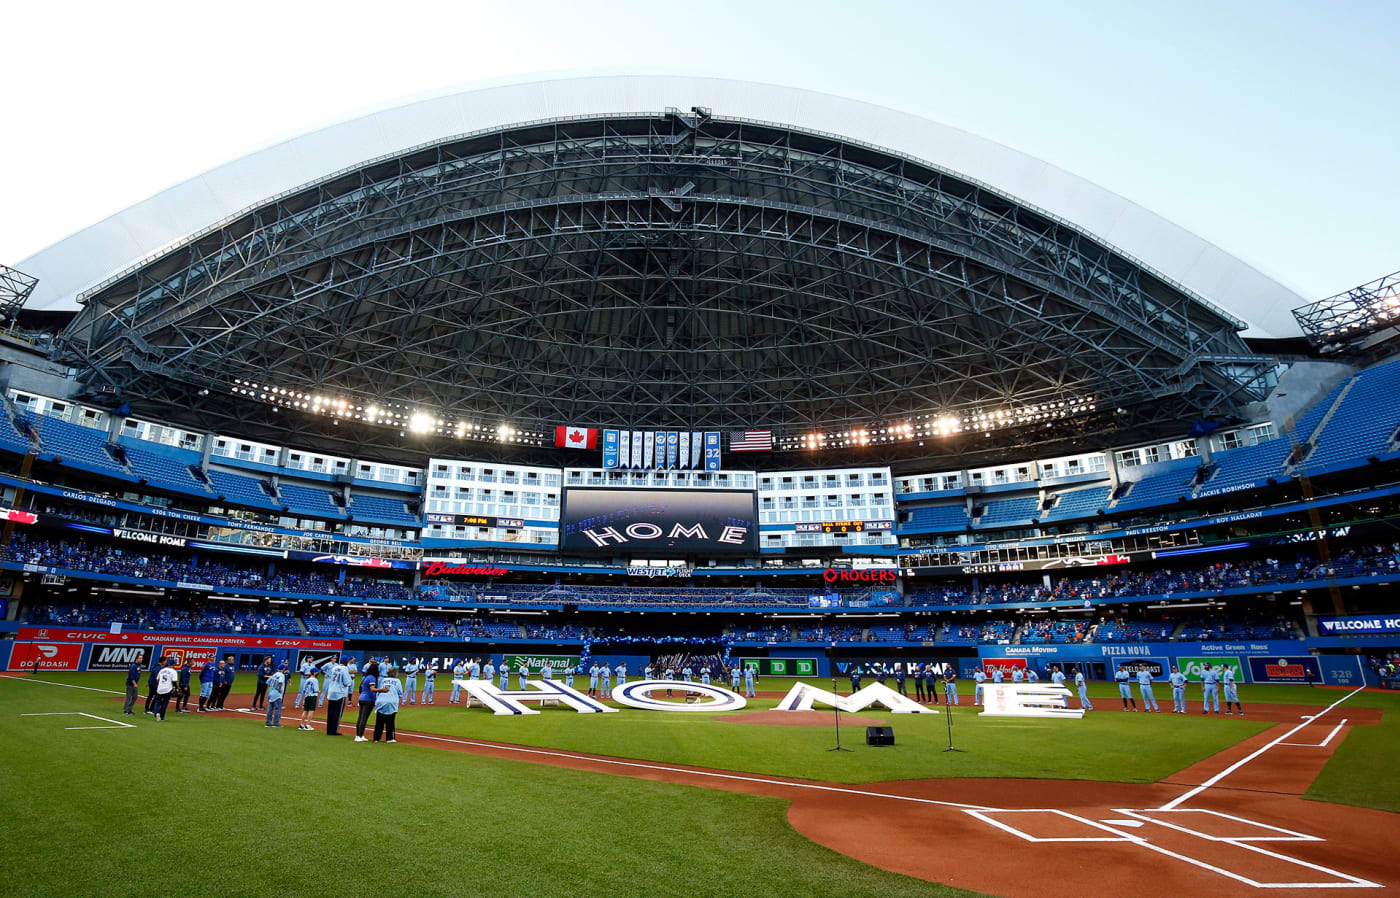 The Toronto Blue Jays line up behind a 'Home' sign to commemorate their first home game in Toronto this season prior to a MLB game against the Kansas City Royals at Rogers Centre on July 30, 2021 in Toronto, Canada.